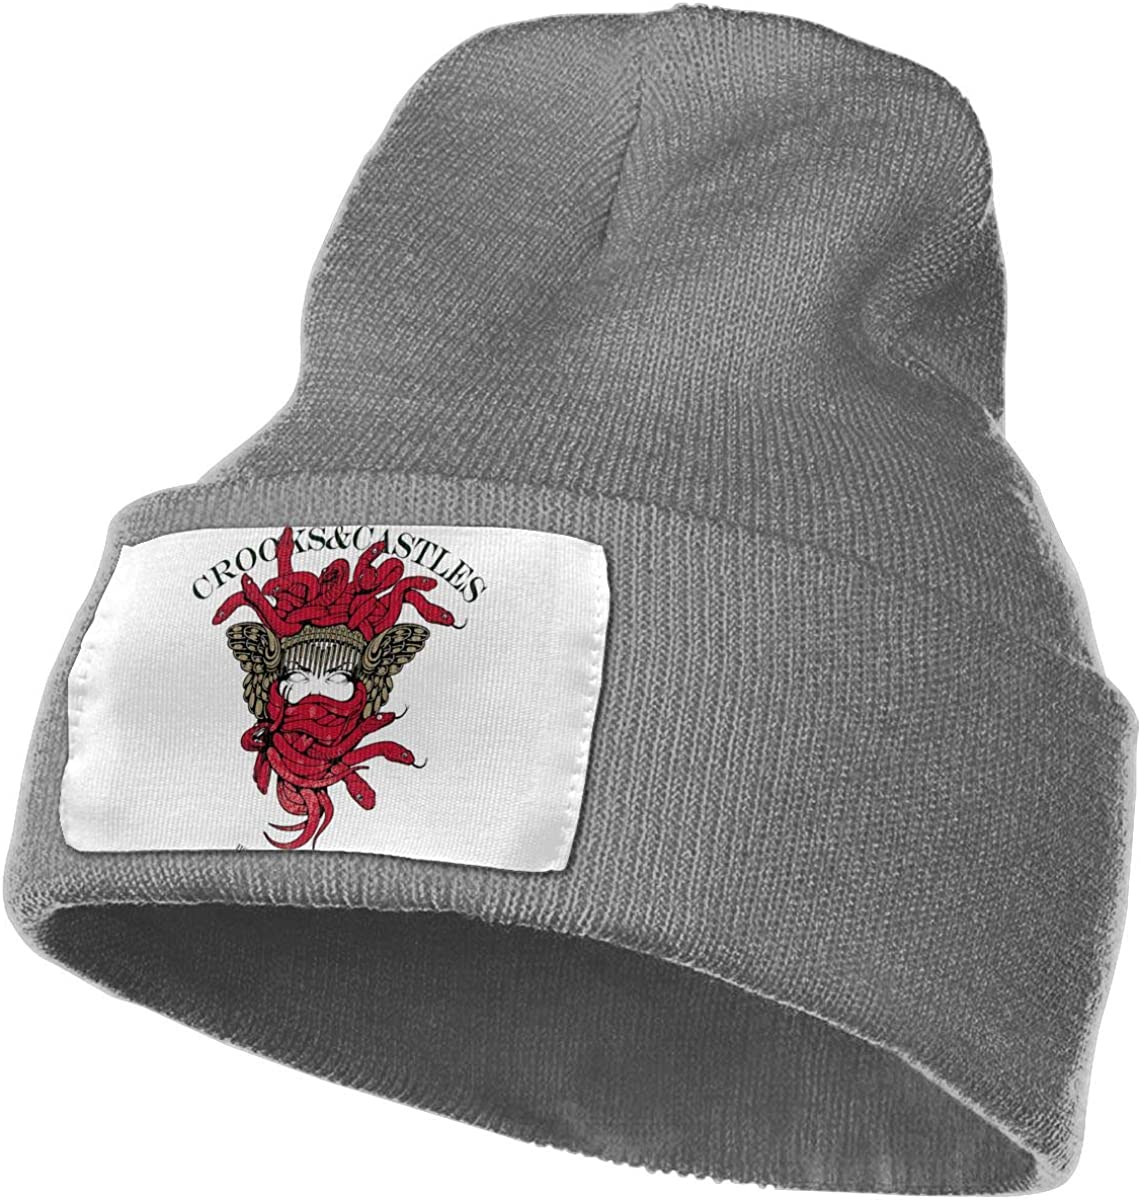 Cewrightdric Winter Crooks and Castles Warm Classic Knit Cap Beanie Hats for Mens Womens Black